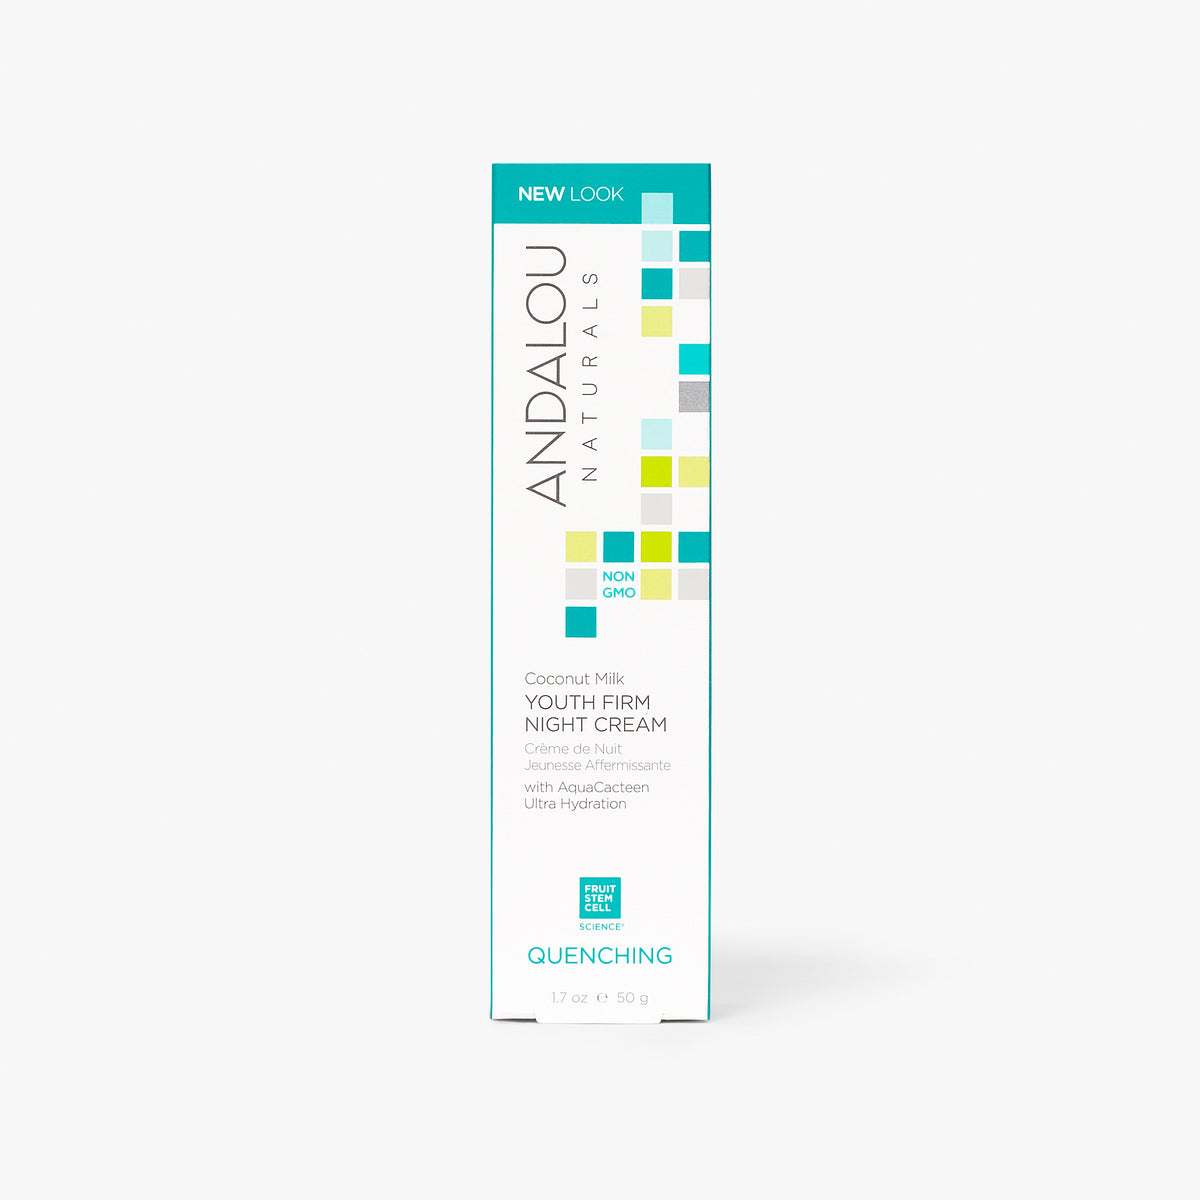 Andalou Naturals Quenching Coconut Milk Youth Firm Night Cream box